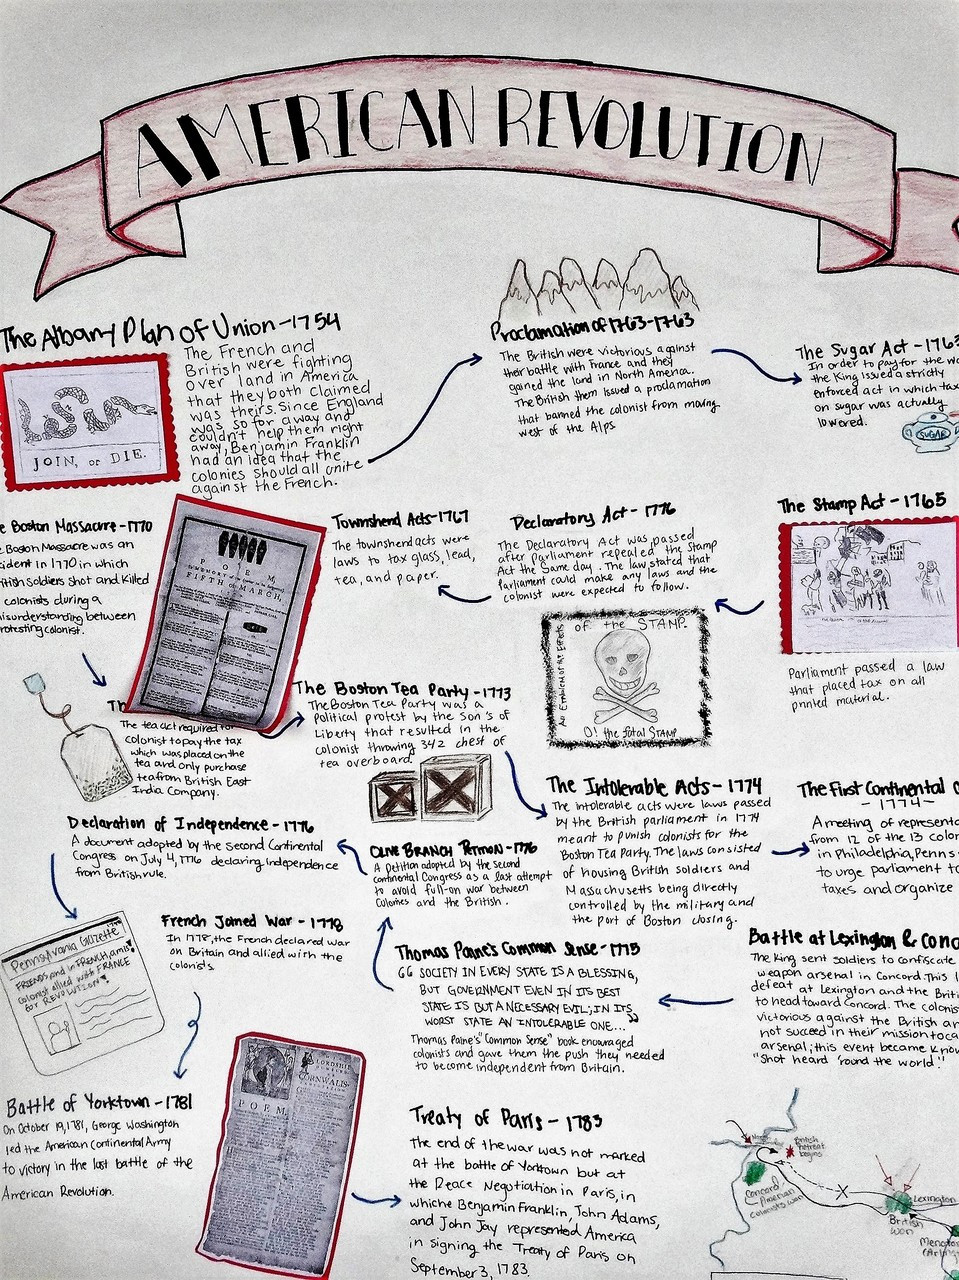 hight resolution of Project: American Revolution Annotated Timeline - Amped Up Learning